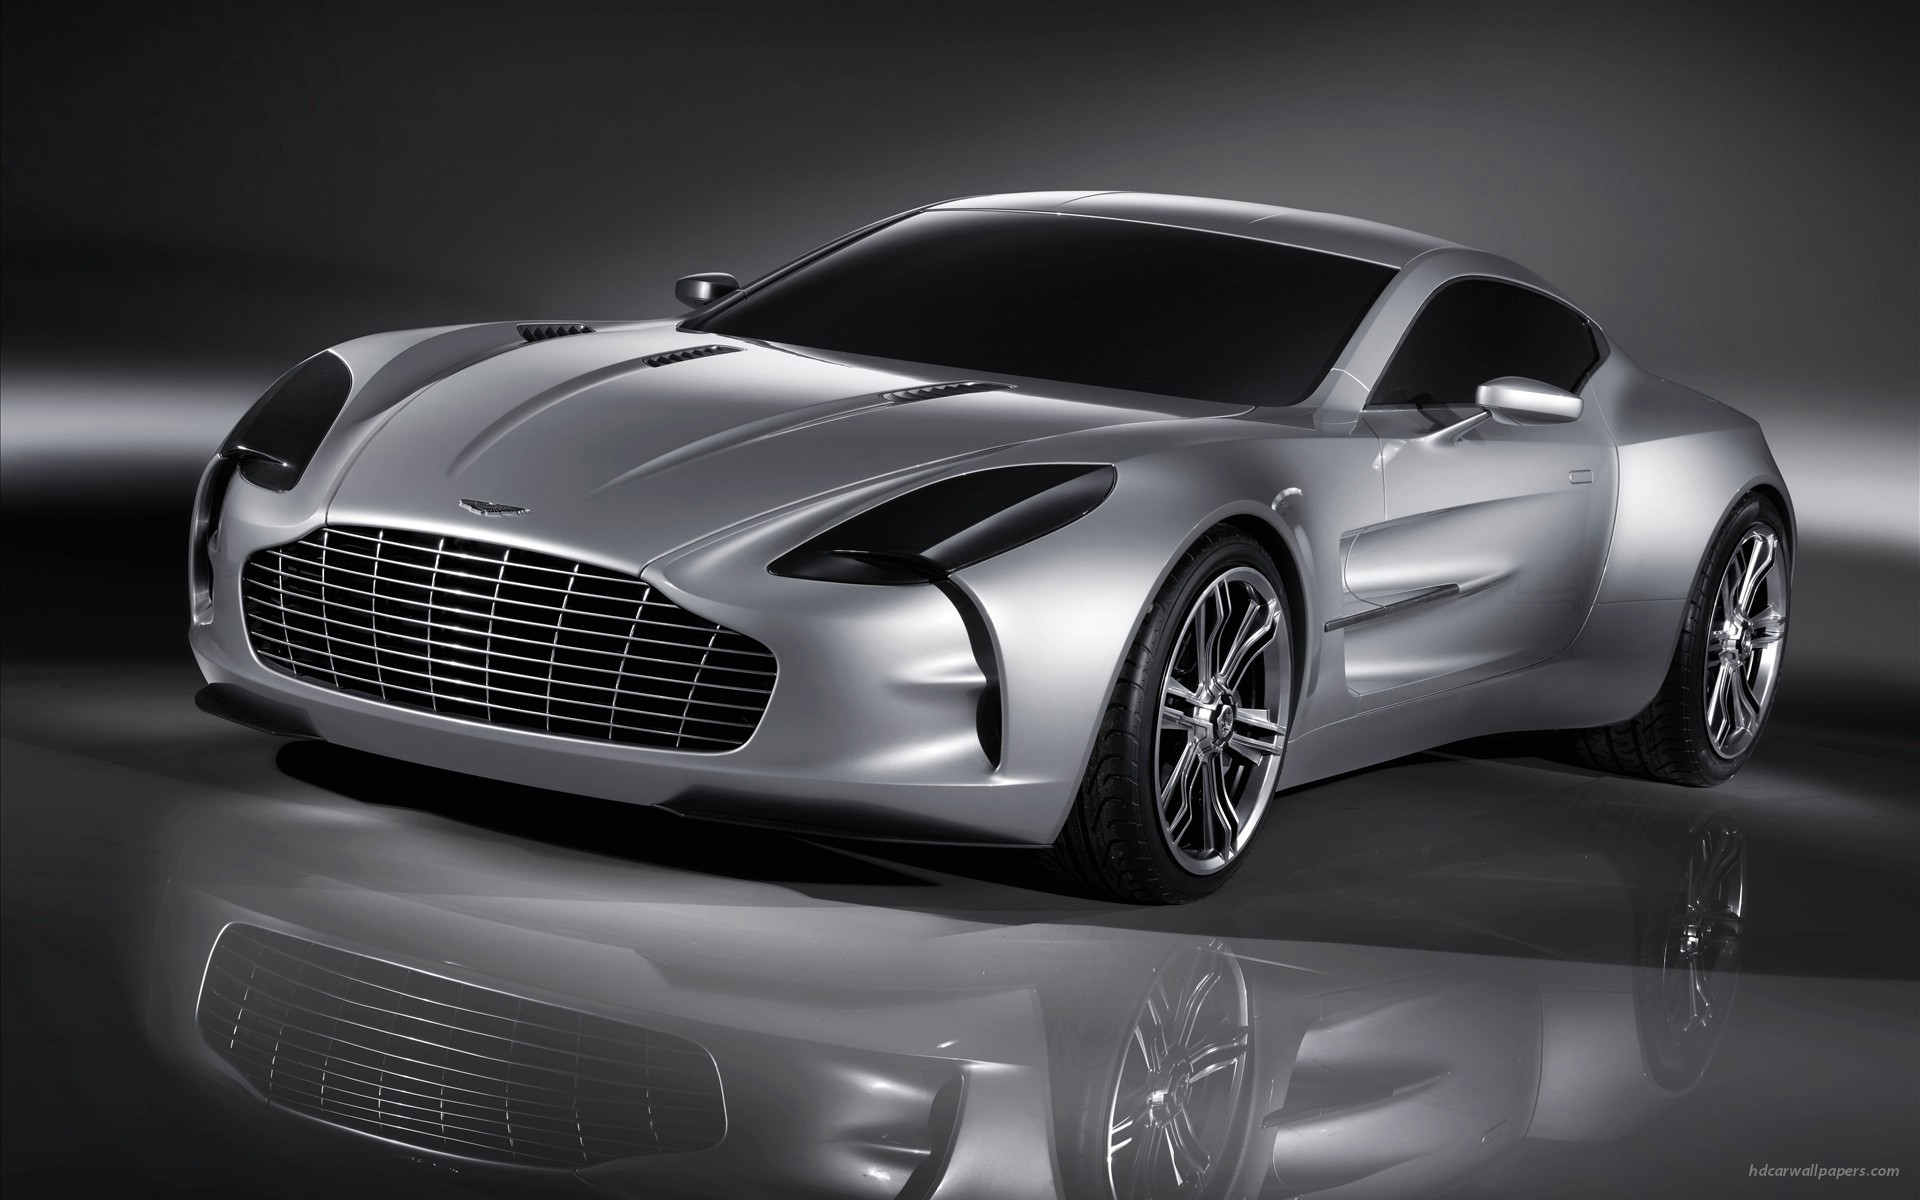 2010 Aston Martin One 77 4 Wallpapers HD Wallpapers 1920x1200